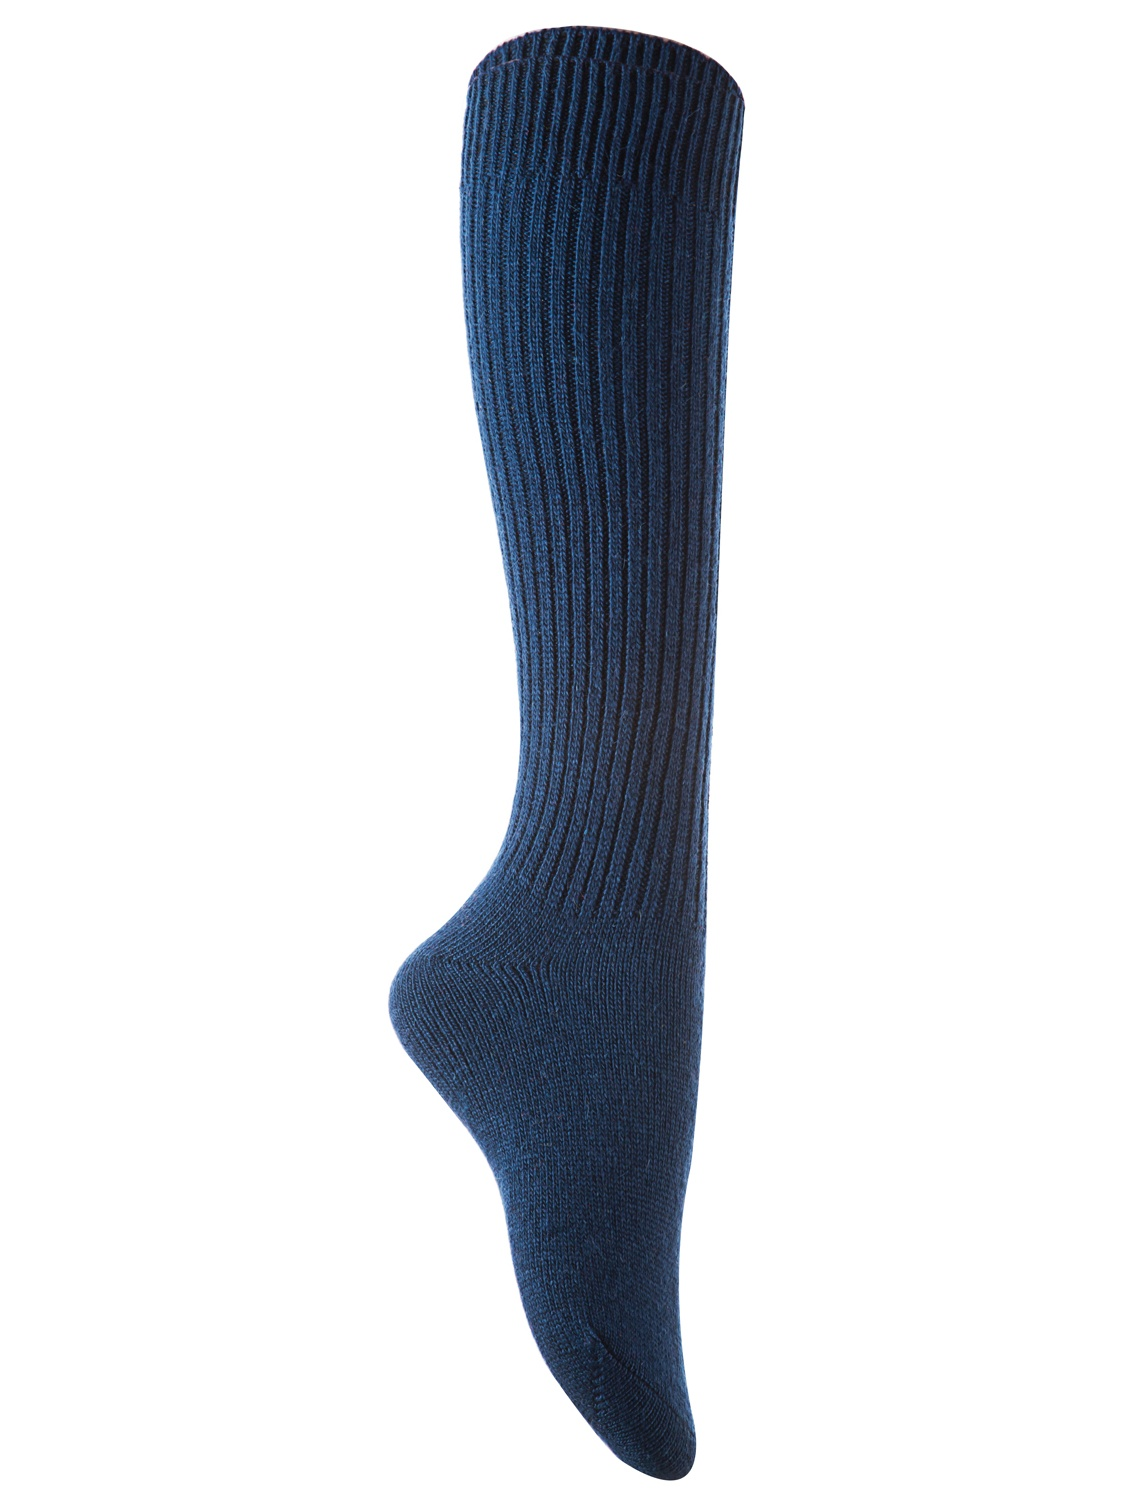 Lian LifeStyle Big Girl's 4 Pairs Knee High Knitted Wool Socks Stripped FS05 Size 6-9(Black,Grey,Beige,Navy)